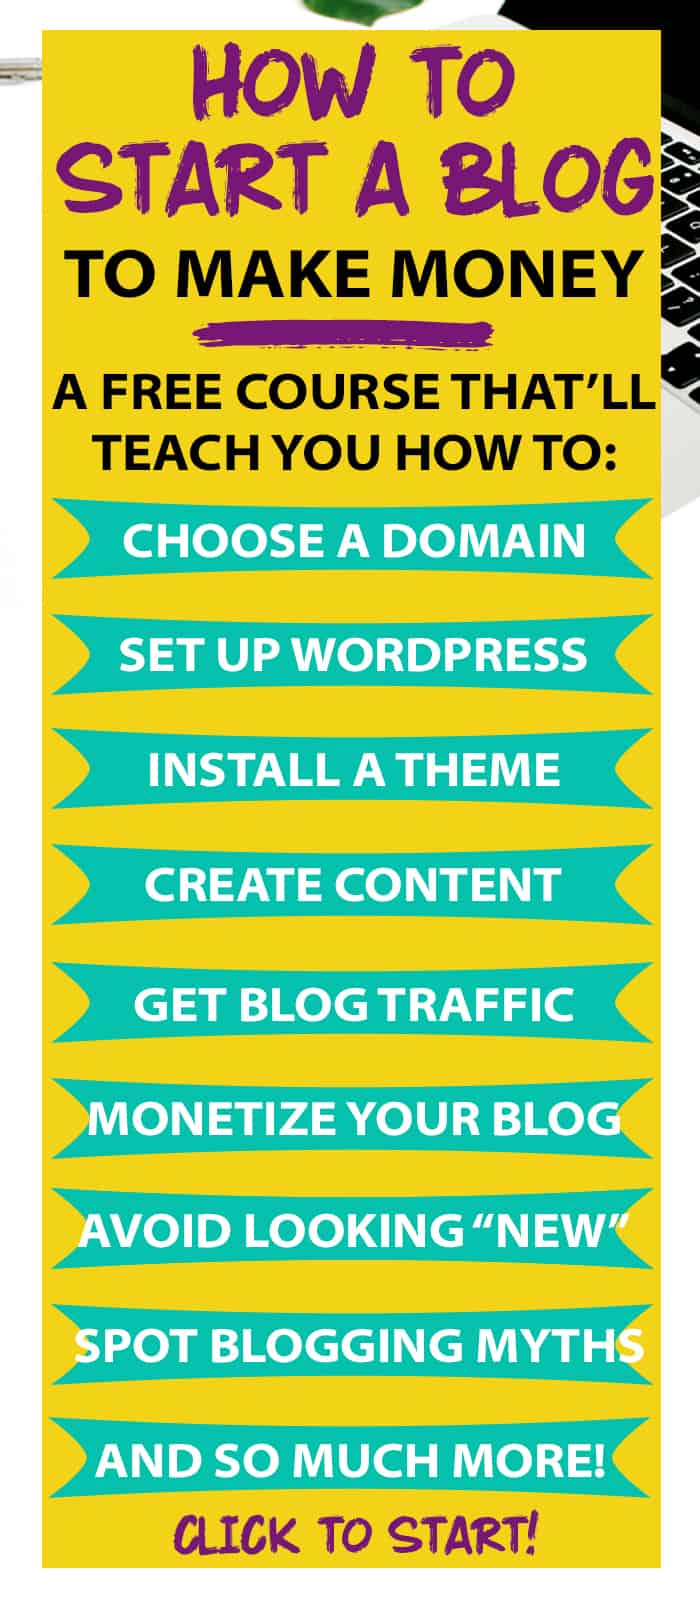 How To Start A Blog And Make Money From Home A Free Step